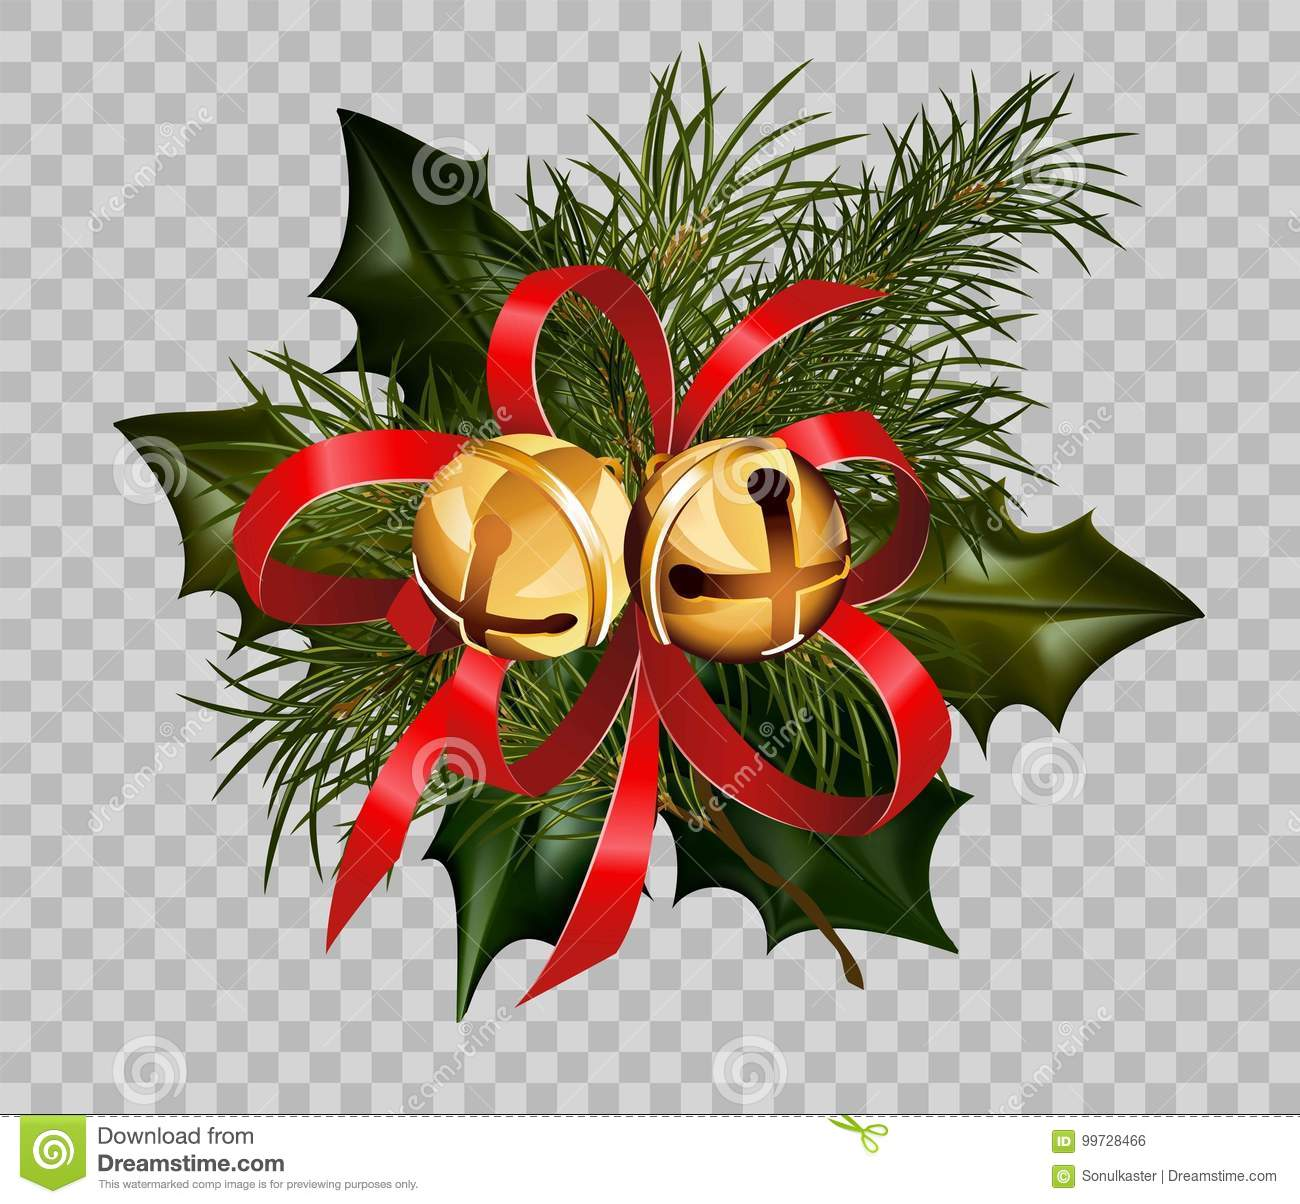 Christmas Graphics Transparent.Christmas Decoration Holly Fir Wreath Bow Golden Bells